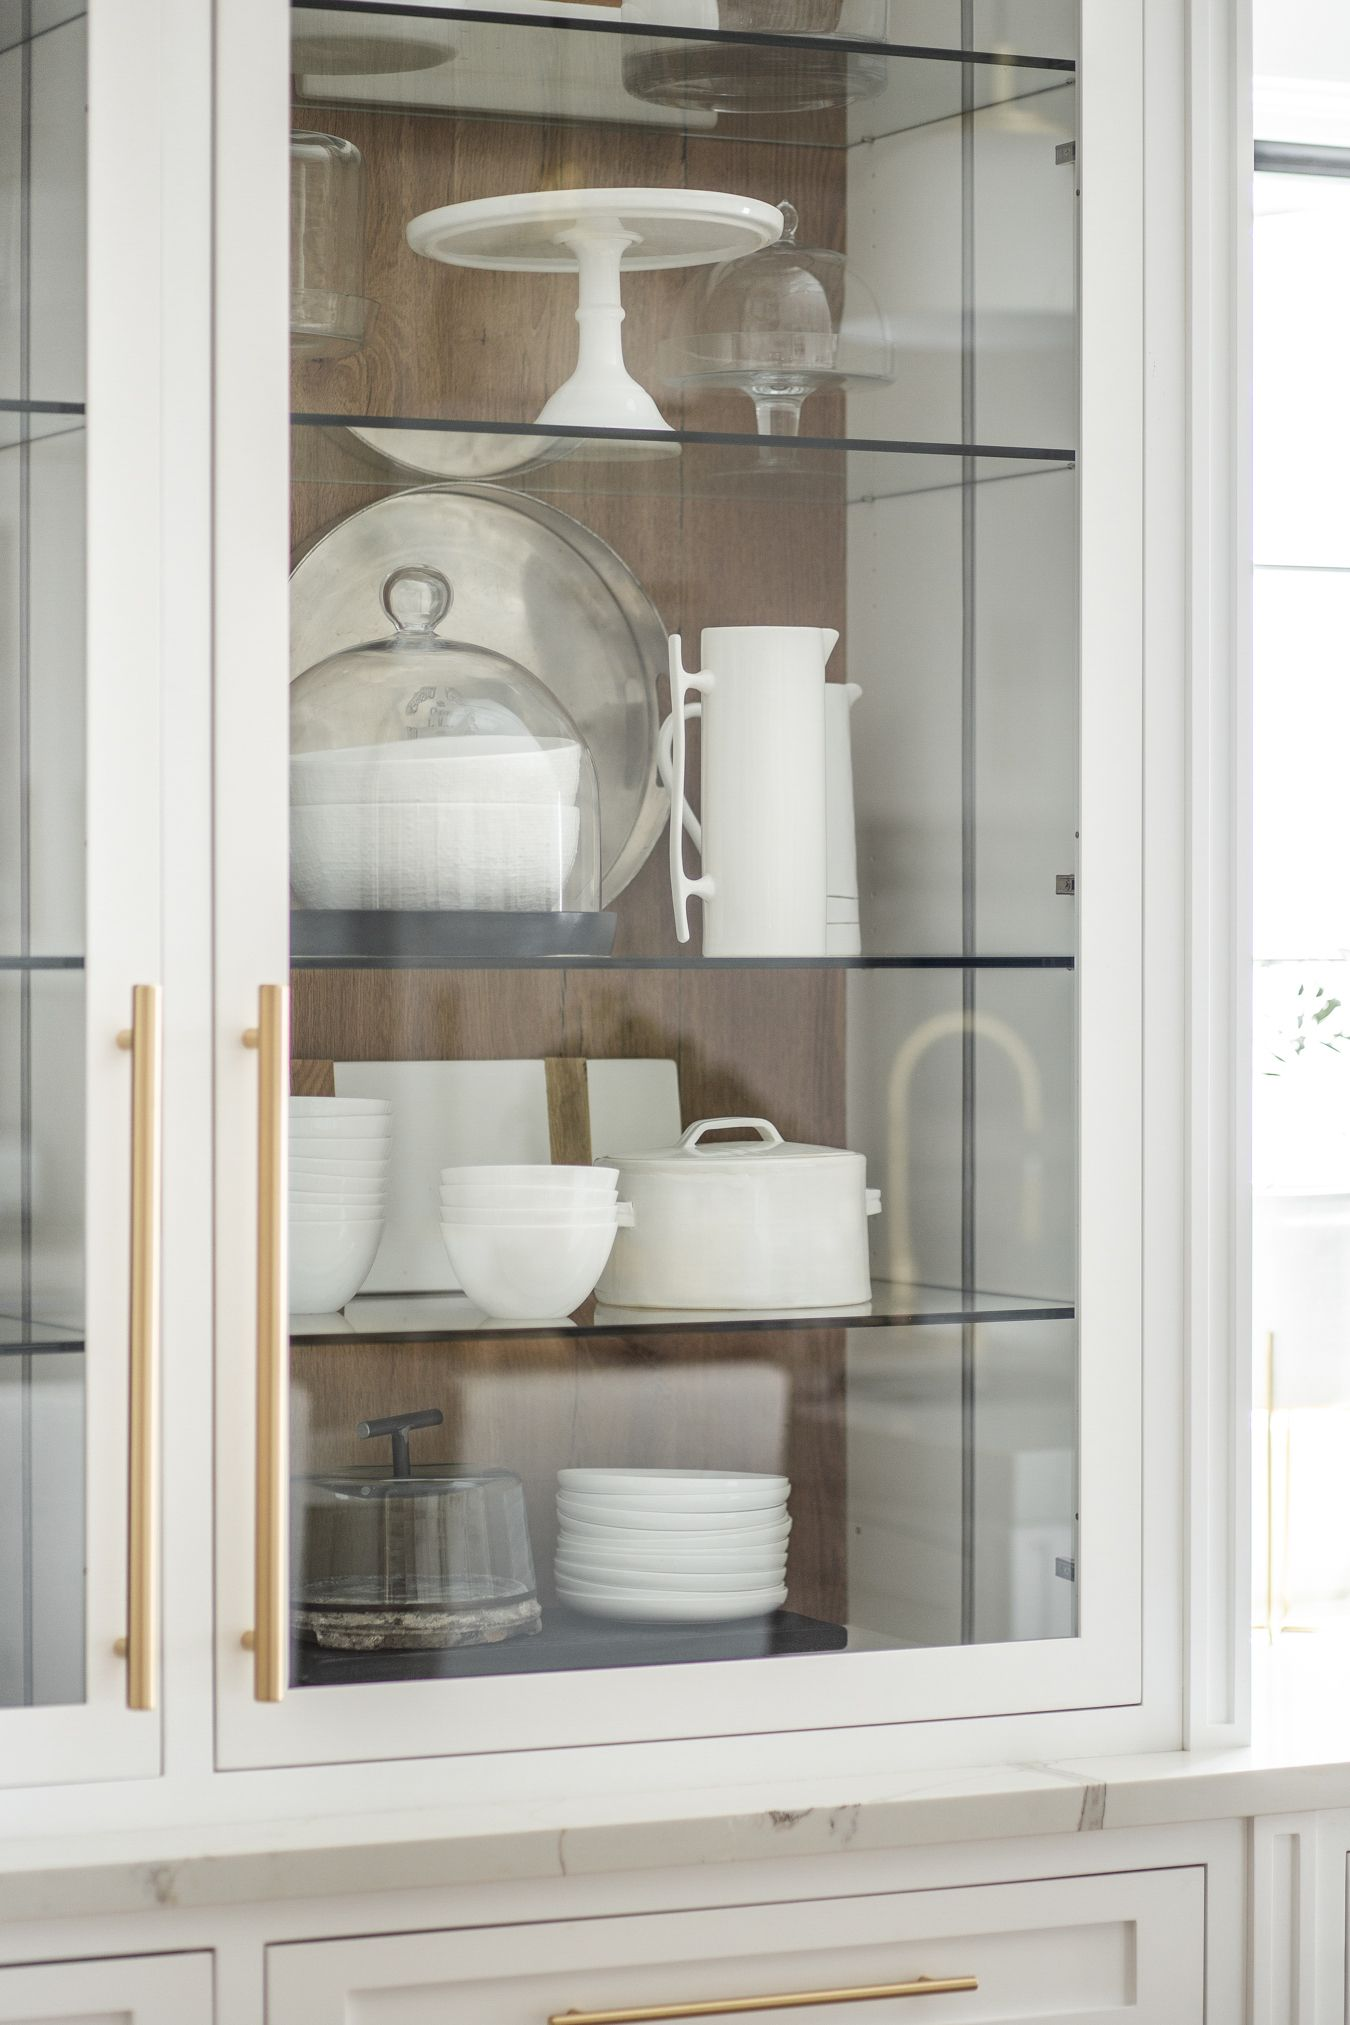 Built In White Kitchen Cabinets Pantry Decor Home Kitchens White Kitchen Cabinets